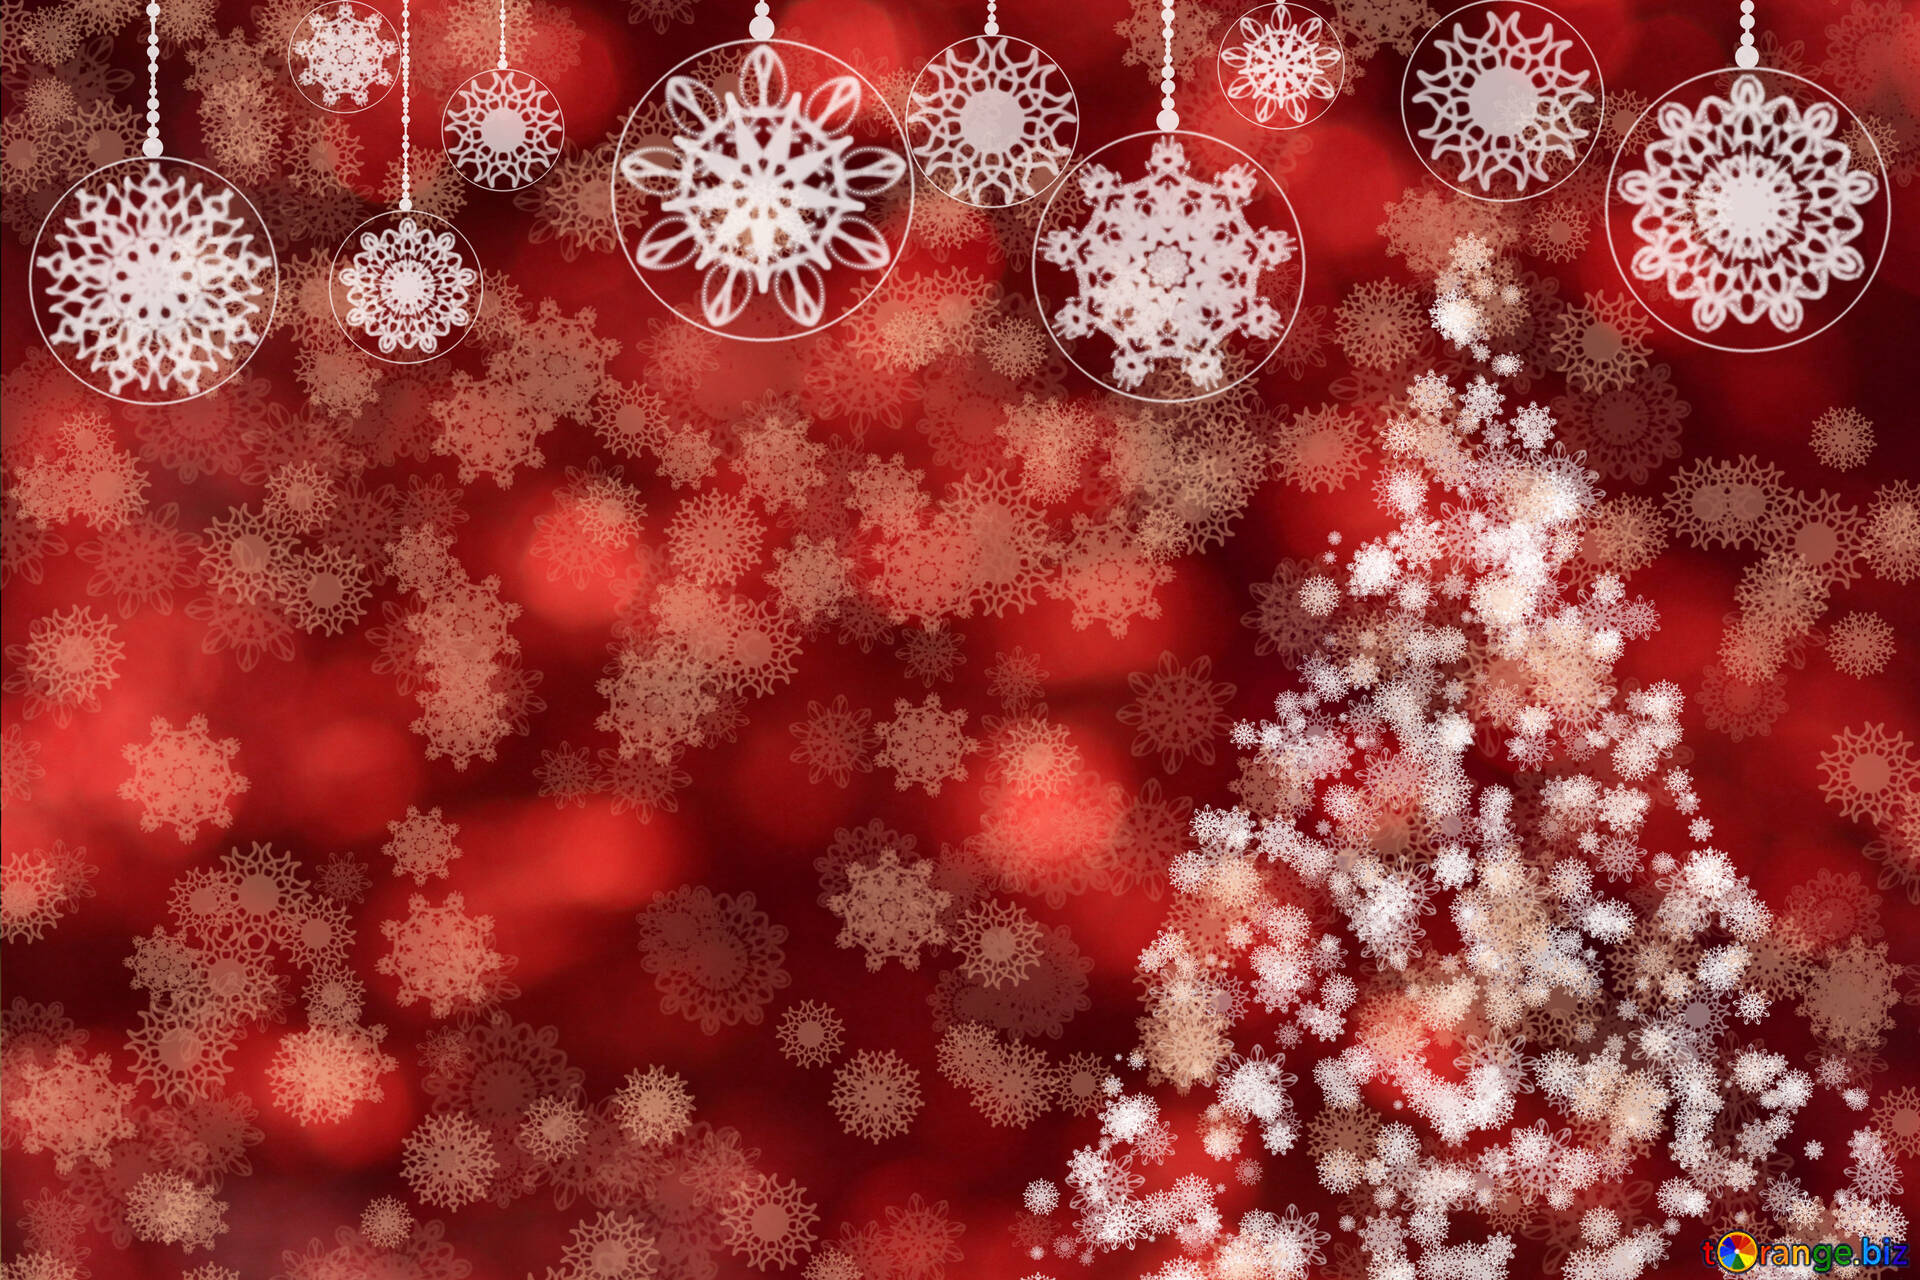 download free image new year red background in hd wallpaper size 1920px